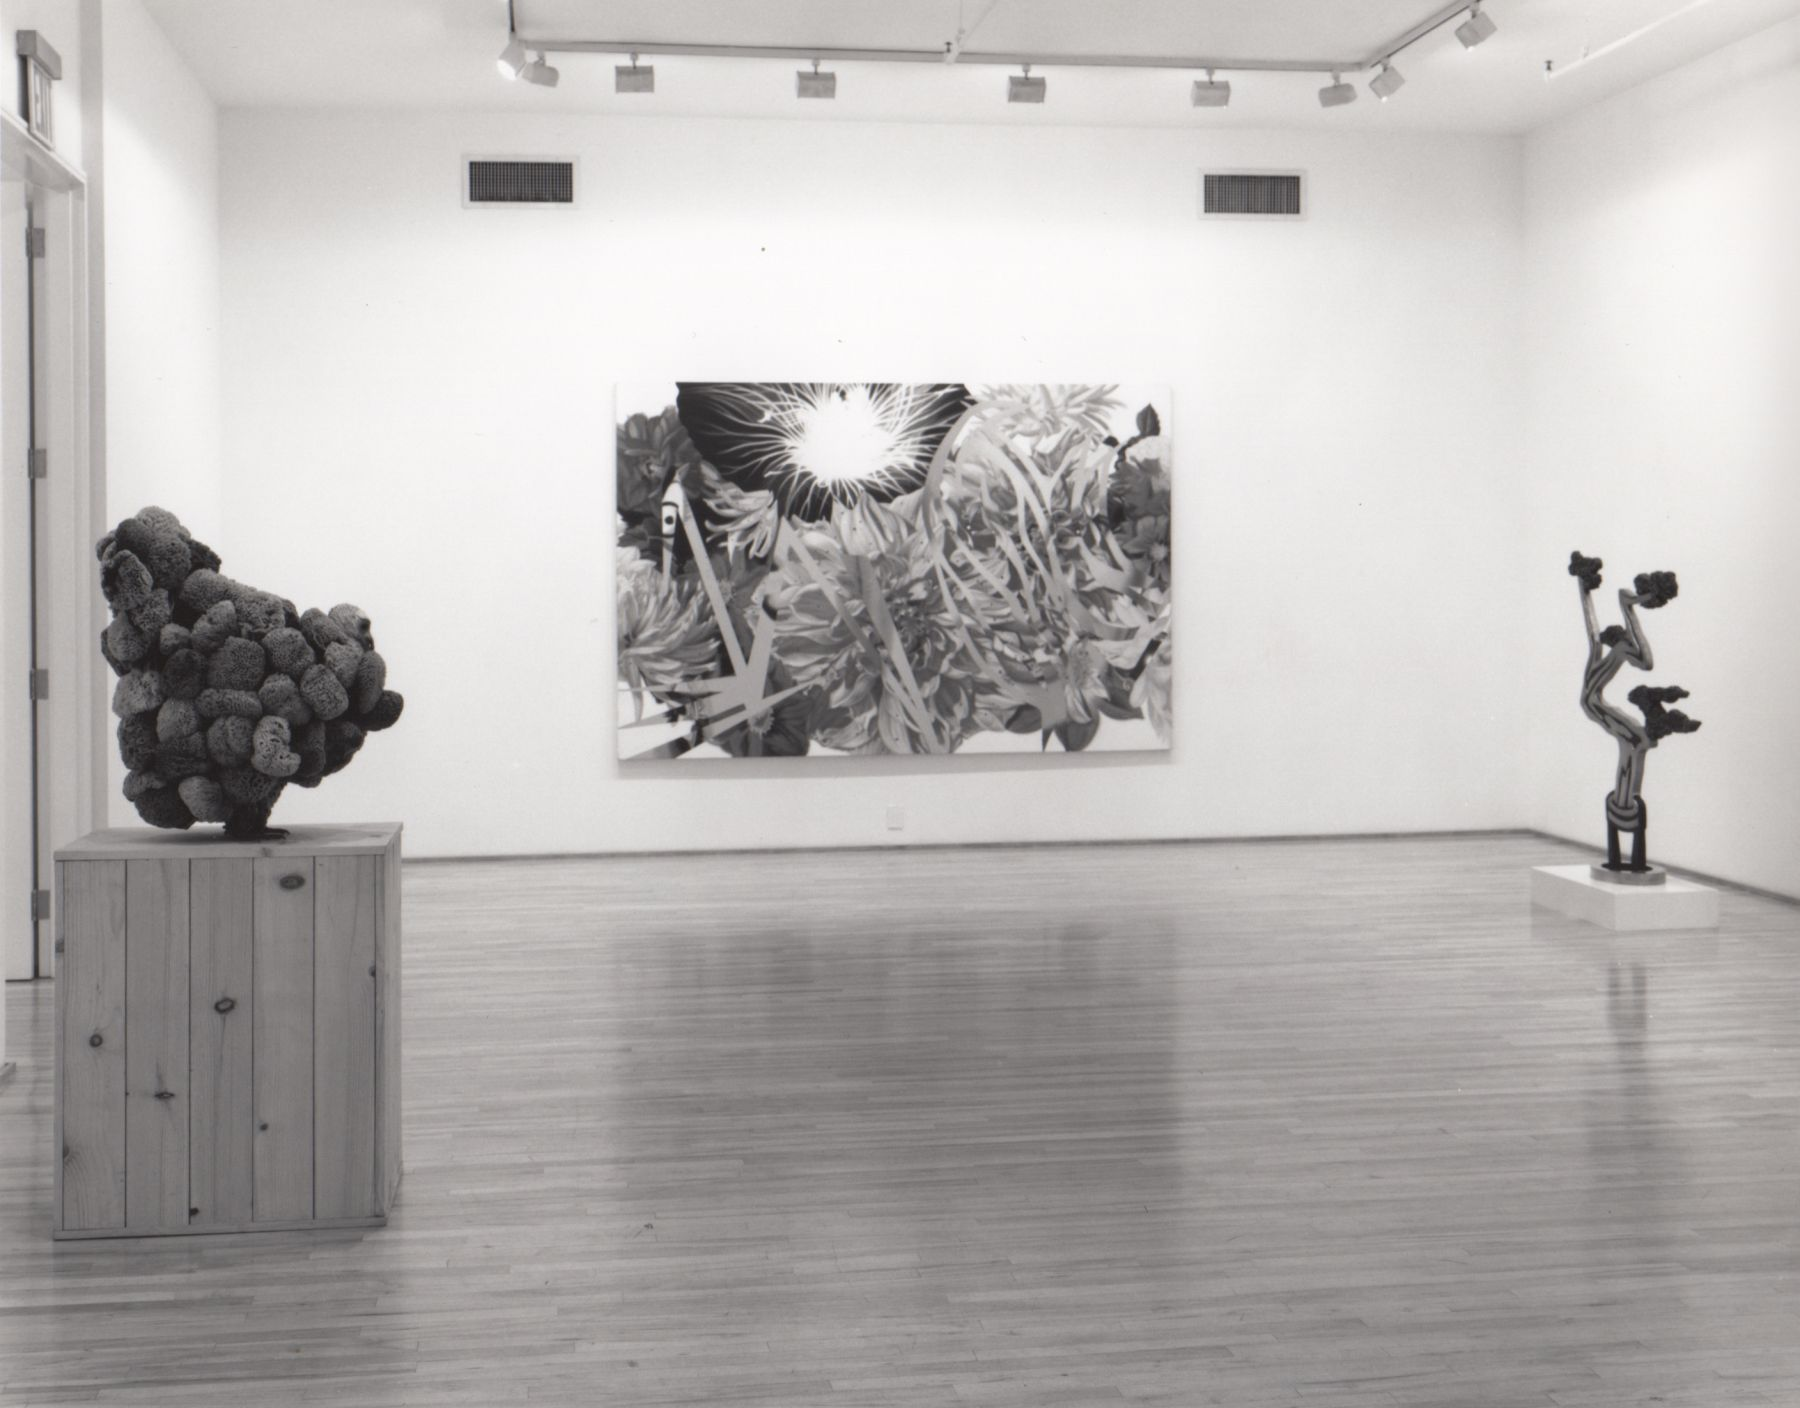 Installation view, Summer Group Exhibition, 578 BROADWAY